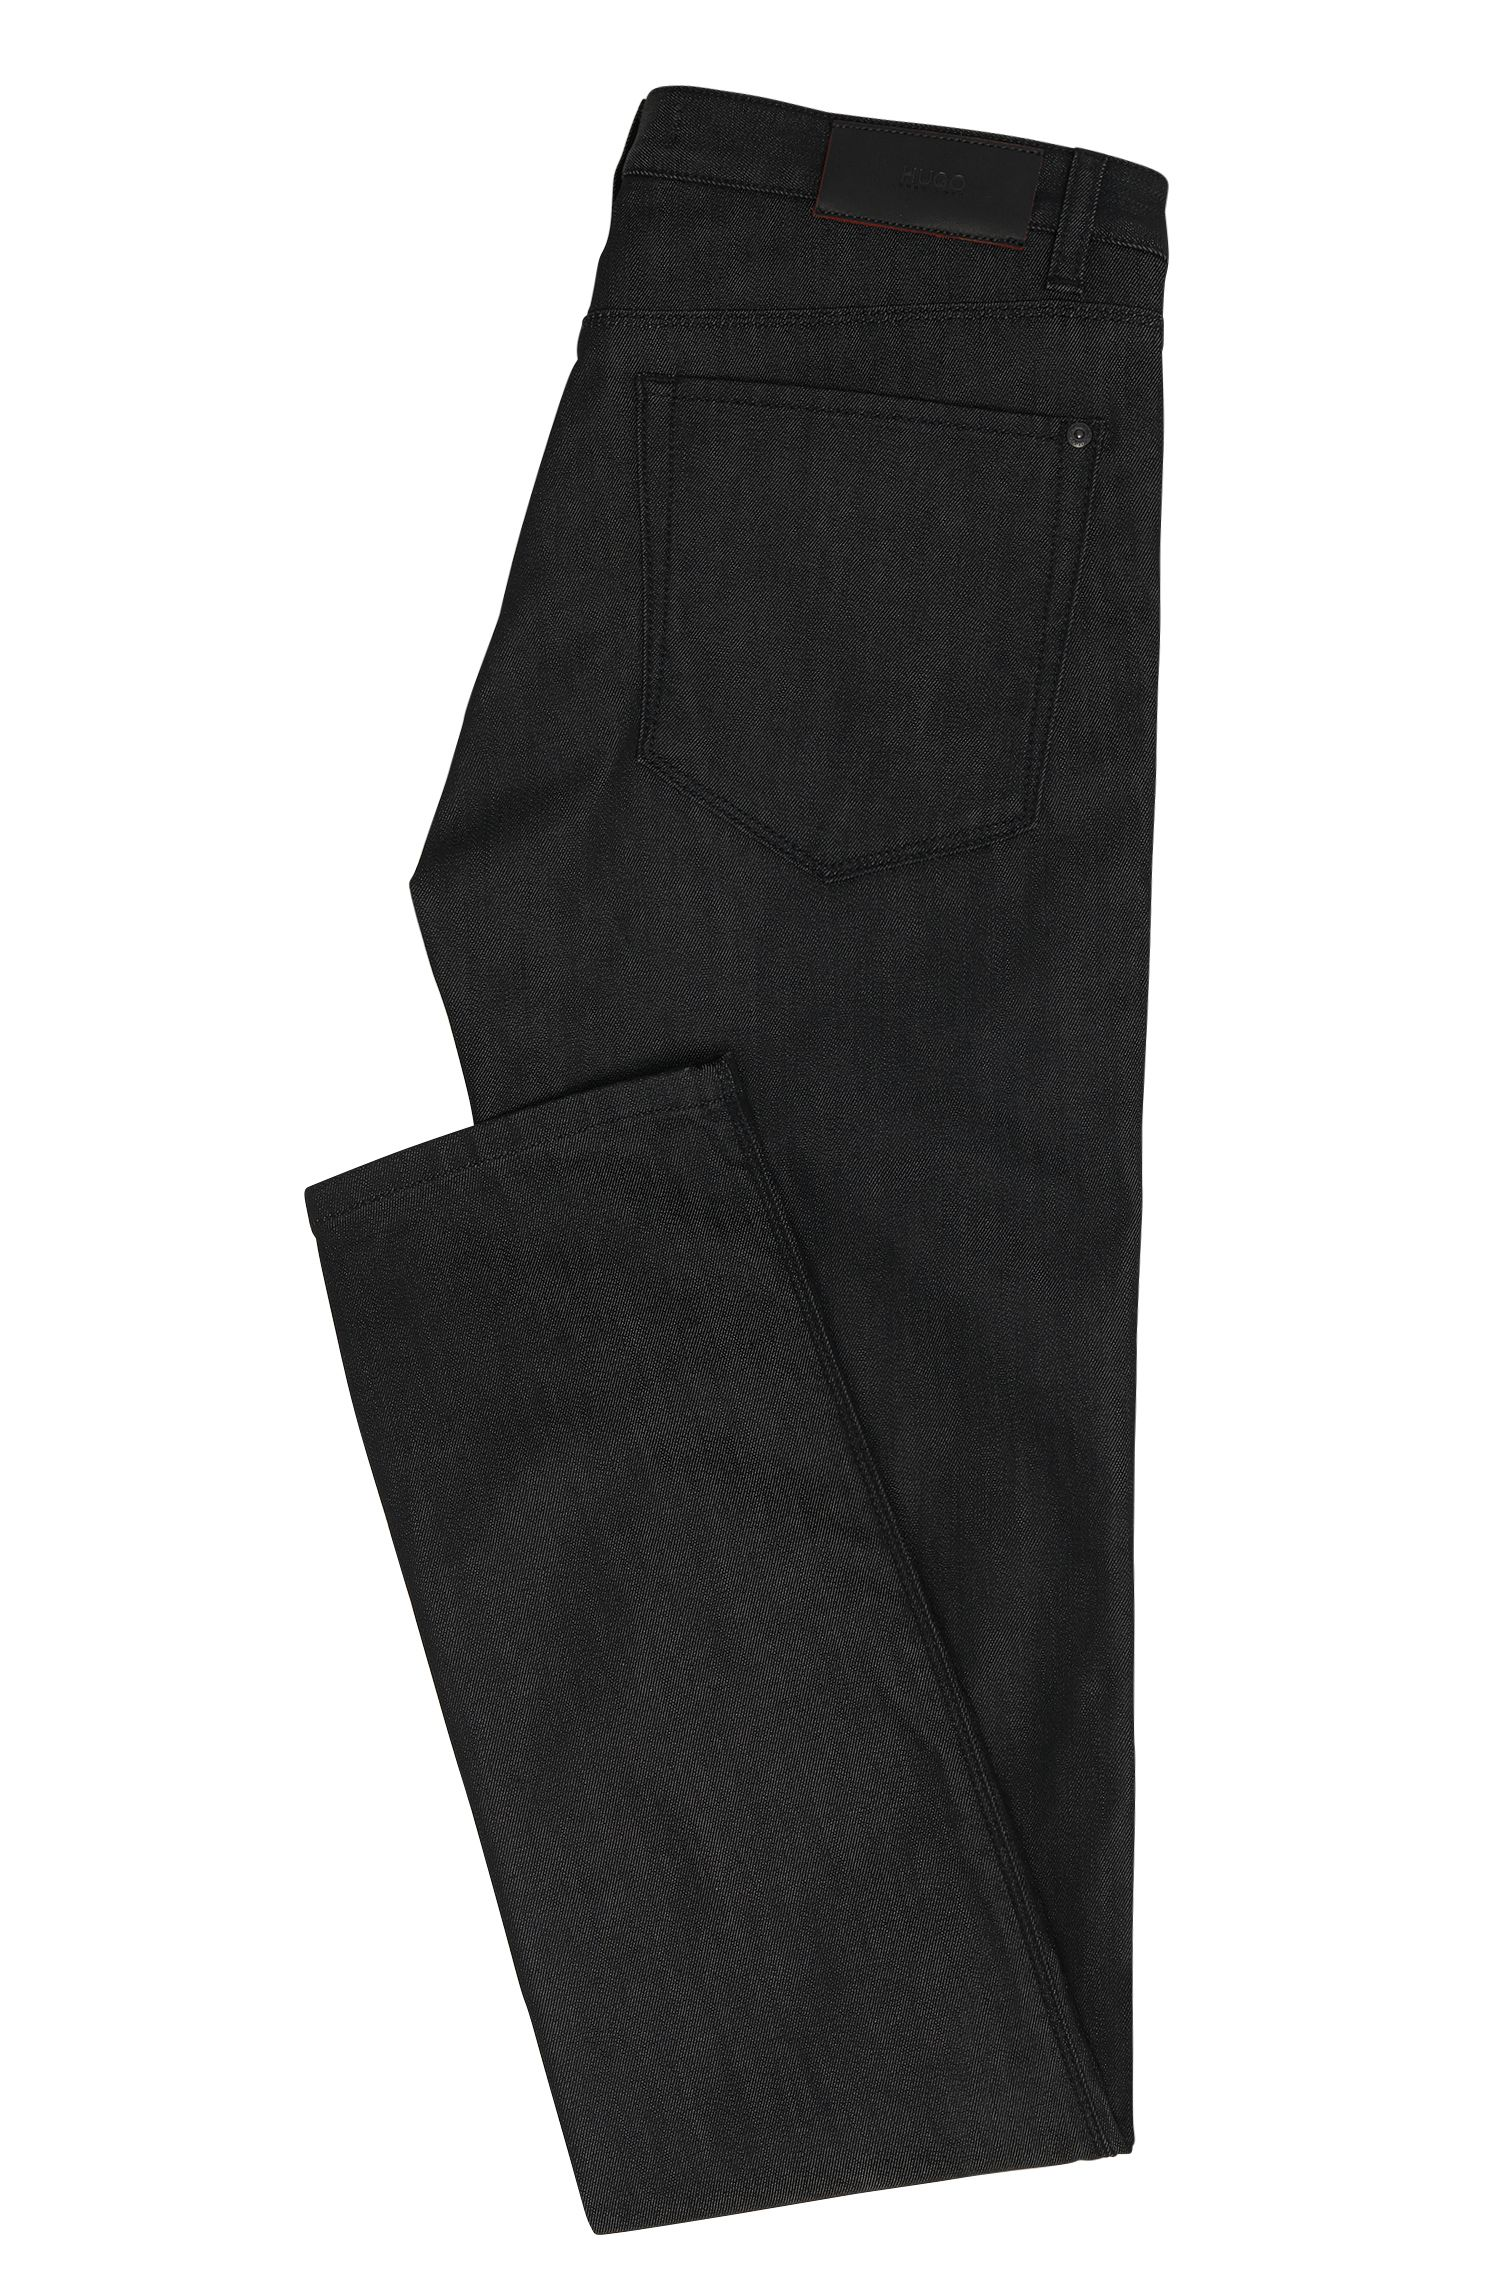 9.5 oz Stretch Cotton Blend Jeans, Slim Fit | Hugo 708, Black